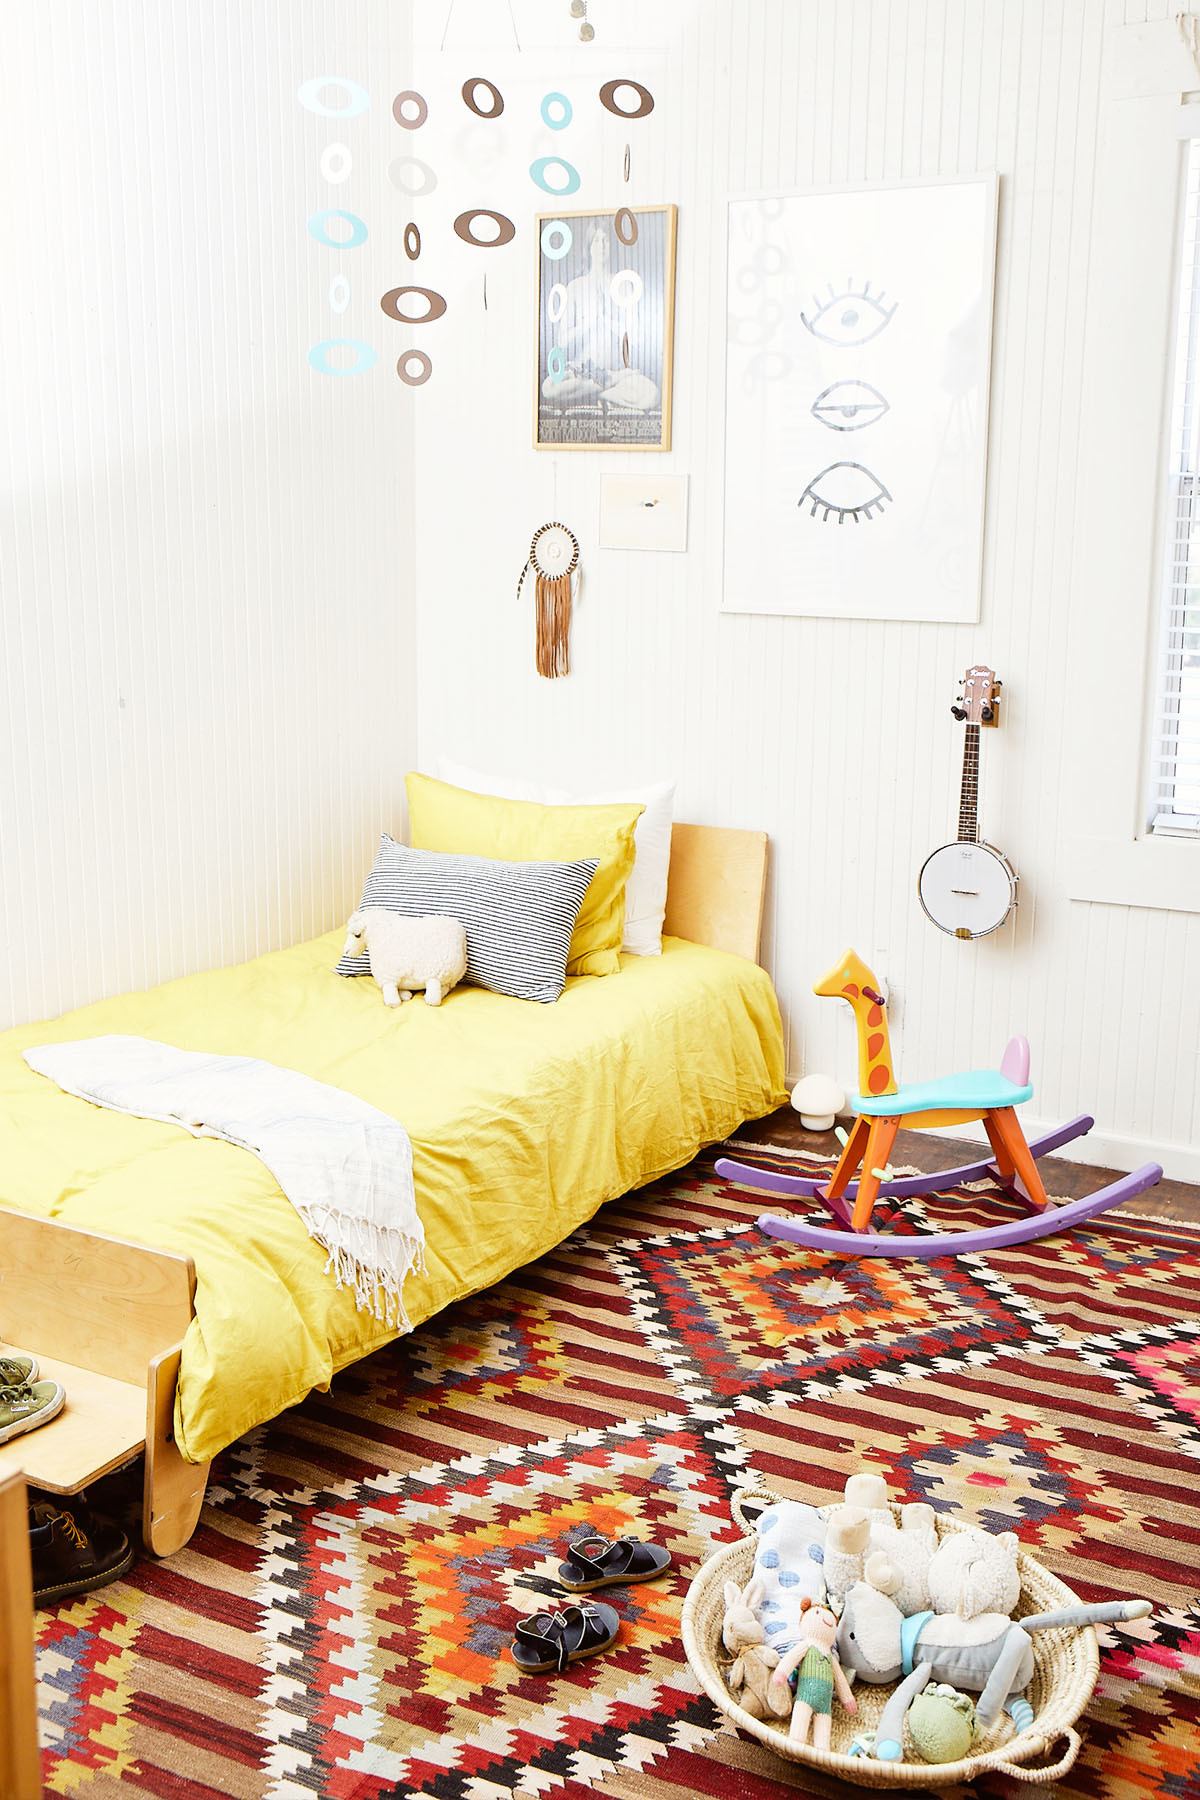 Felix's bedroom is decorated with a blend of accessible finds and family treasures, dating back decades. Craigslist Bed | H&M Bedding | Vintage Turkish Rug | Vintage Mobile | Vintage Artwork | Vintage Rocking Horse | Vintage Poster.